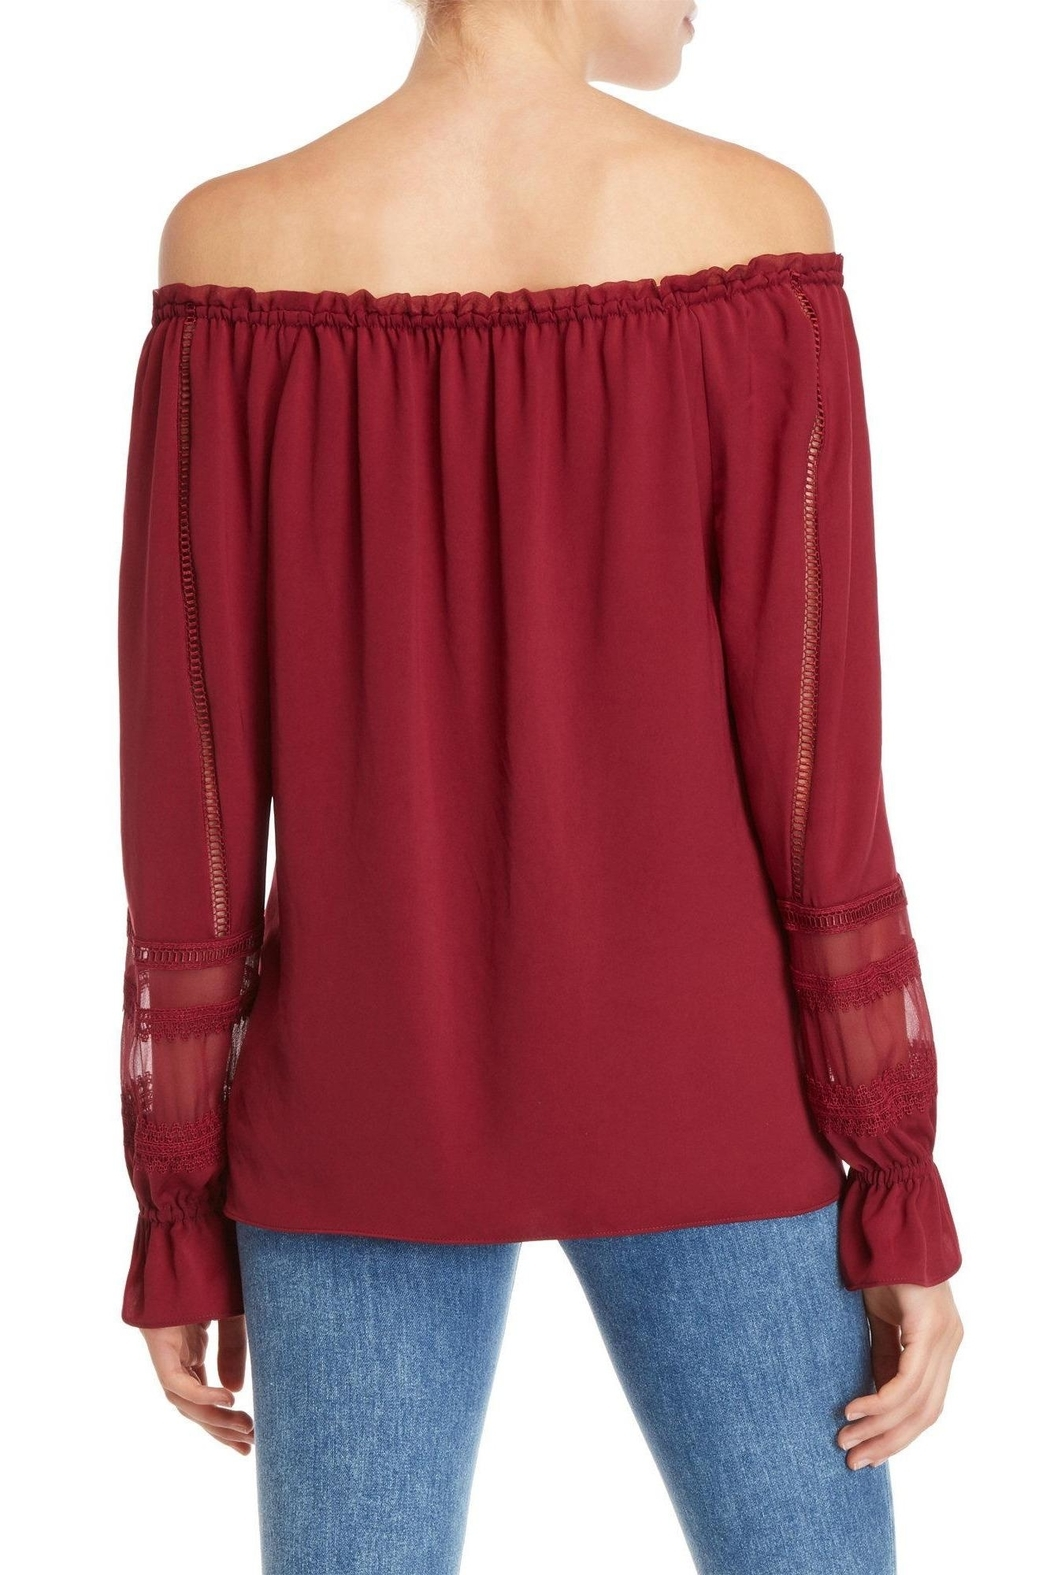 Ramy Brook Thea Blouse - Front Full Image